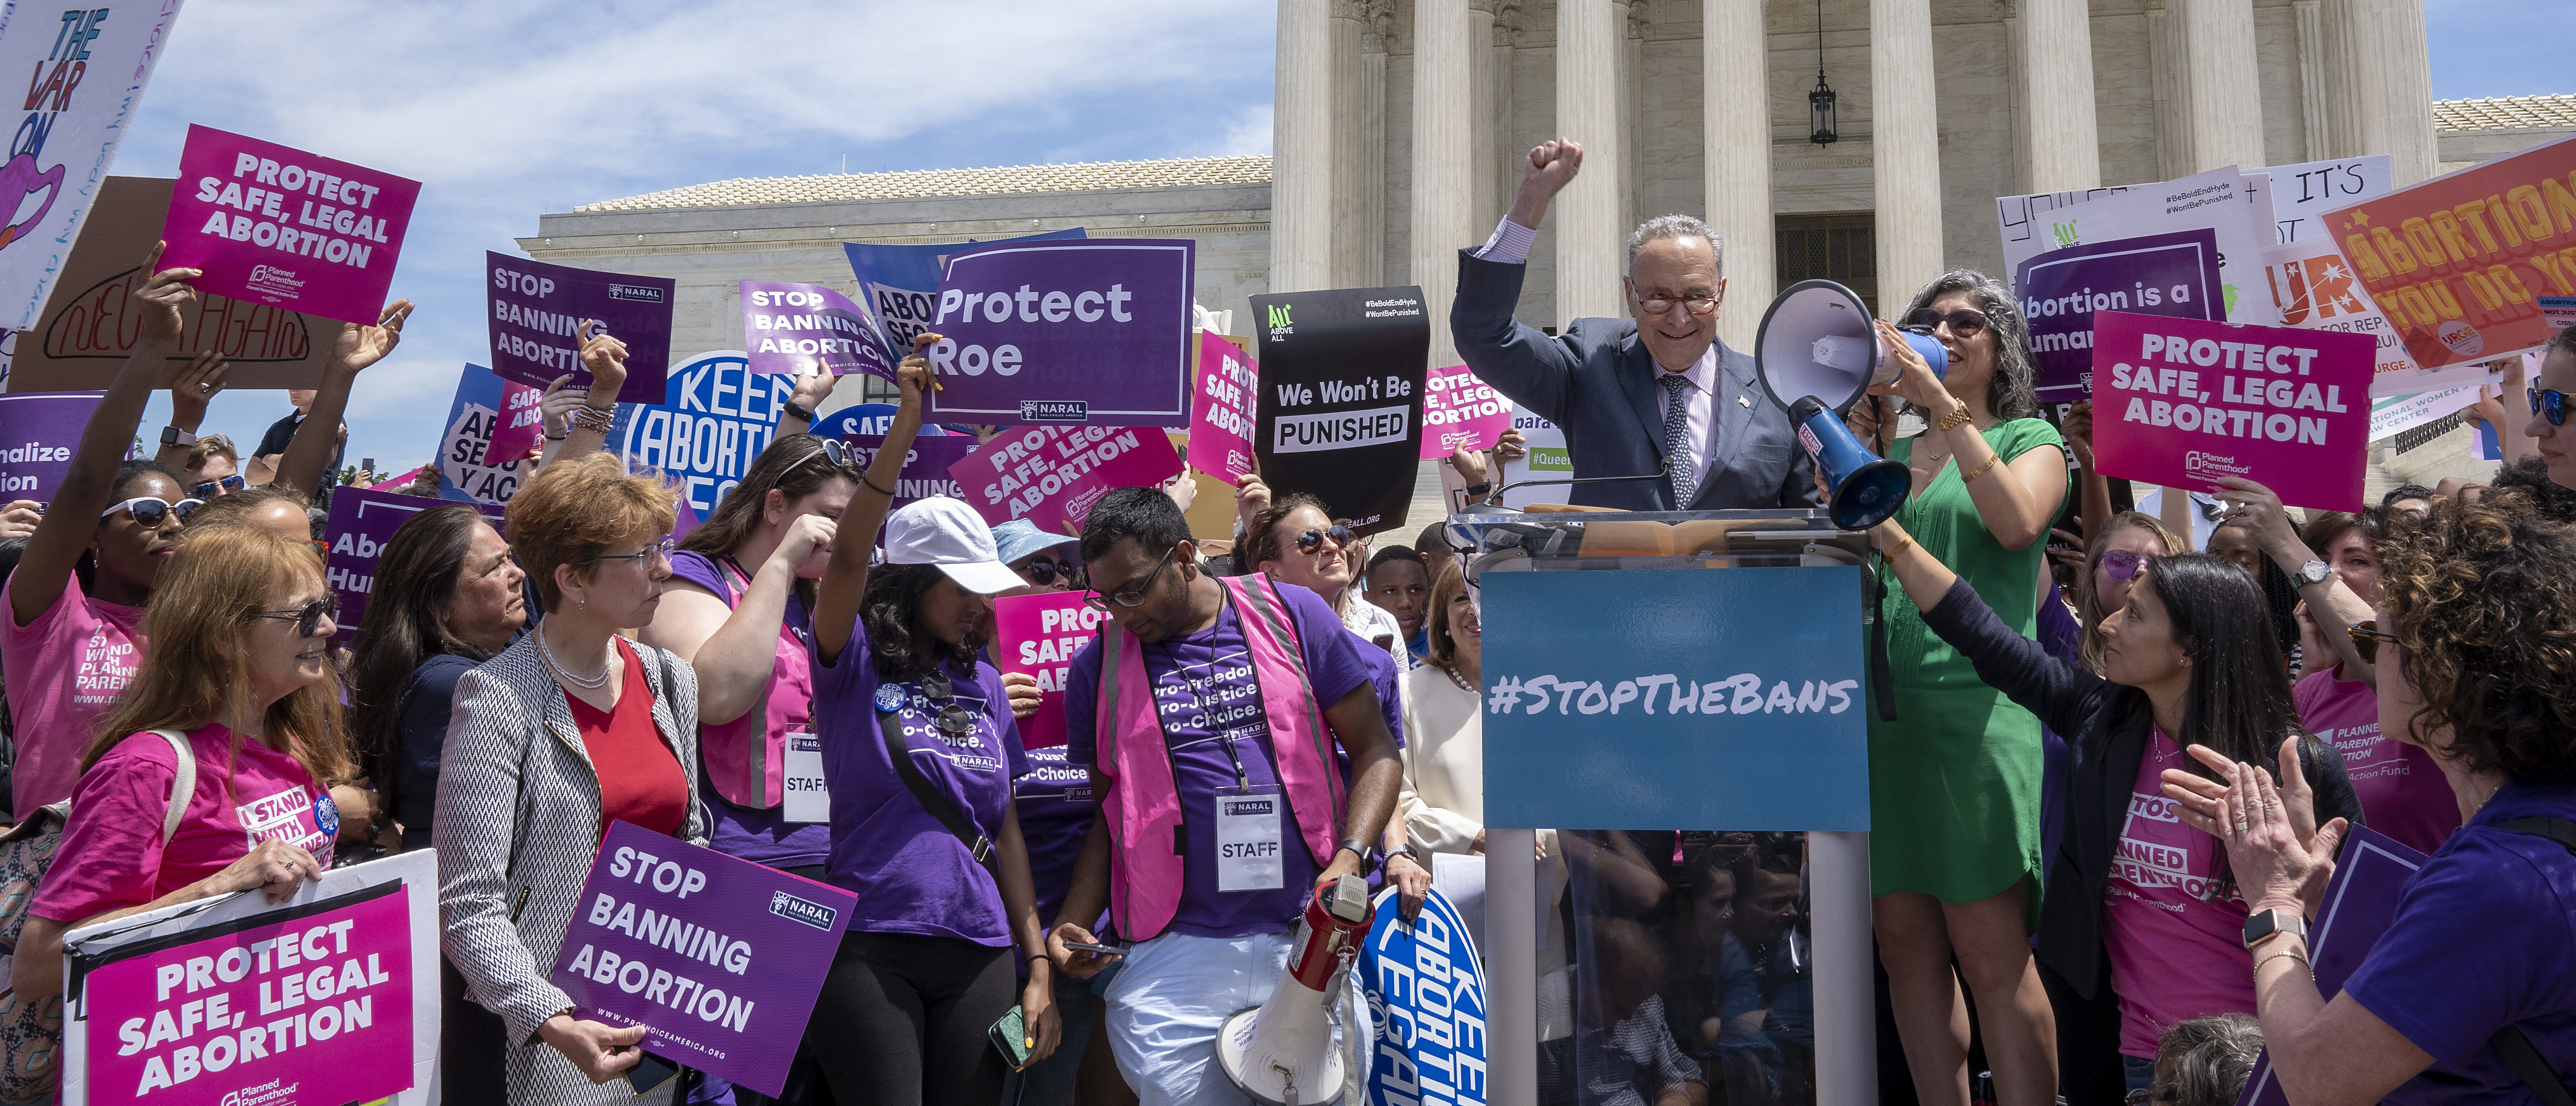 Senate Minority Leader Charles Schumer (D-NY) speaks at a pro-choice rally at the Supreme Court on May 21, 2019 in Washington, DC. (Tasos Katopodis/Getty Images)